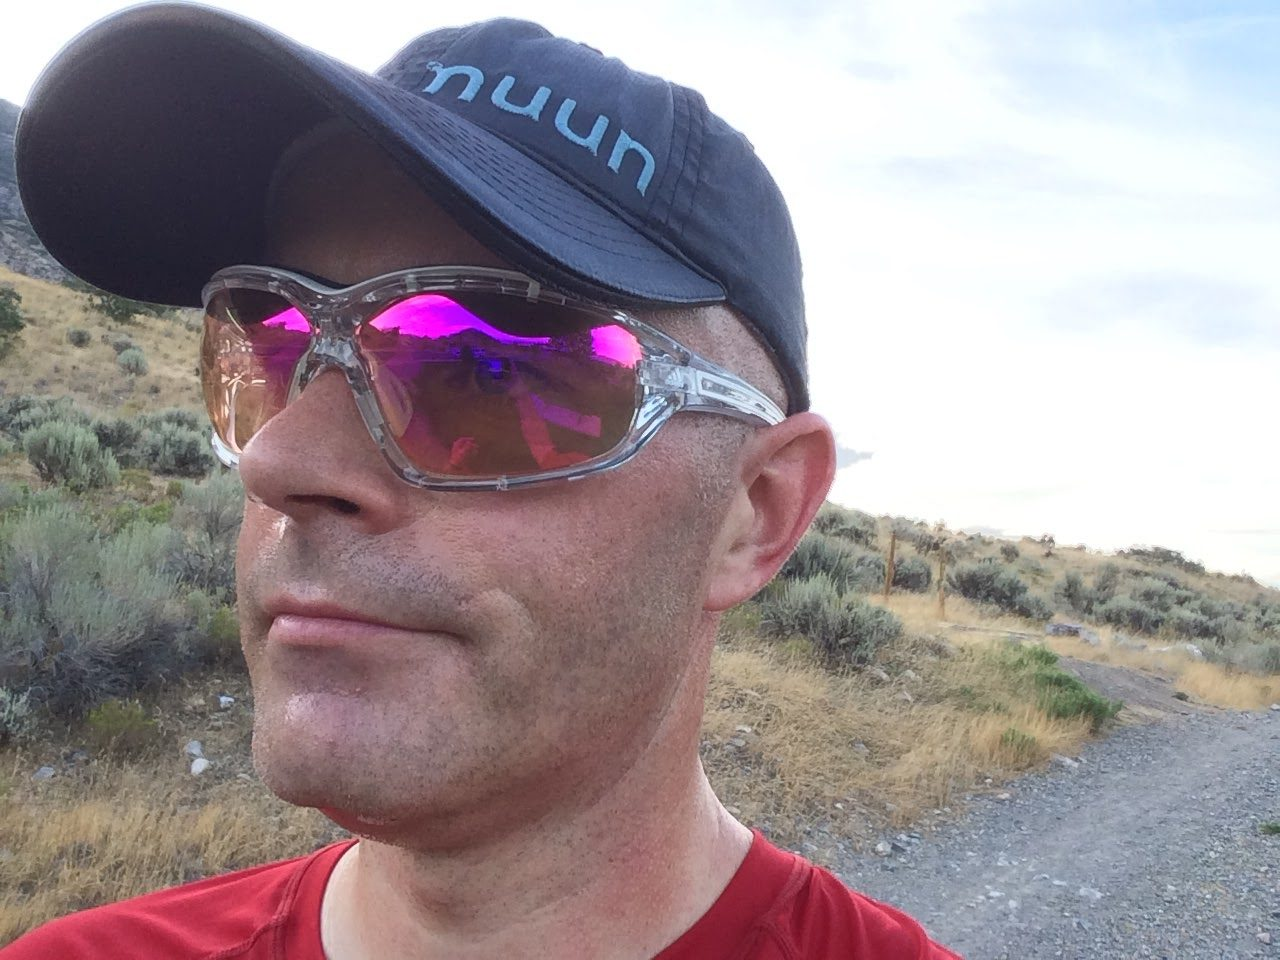 57083c4961 Adidas Evil Eye Evo Pro Sunglasses Review - FeedTheHabit.com